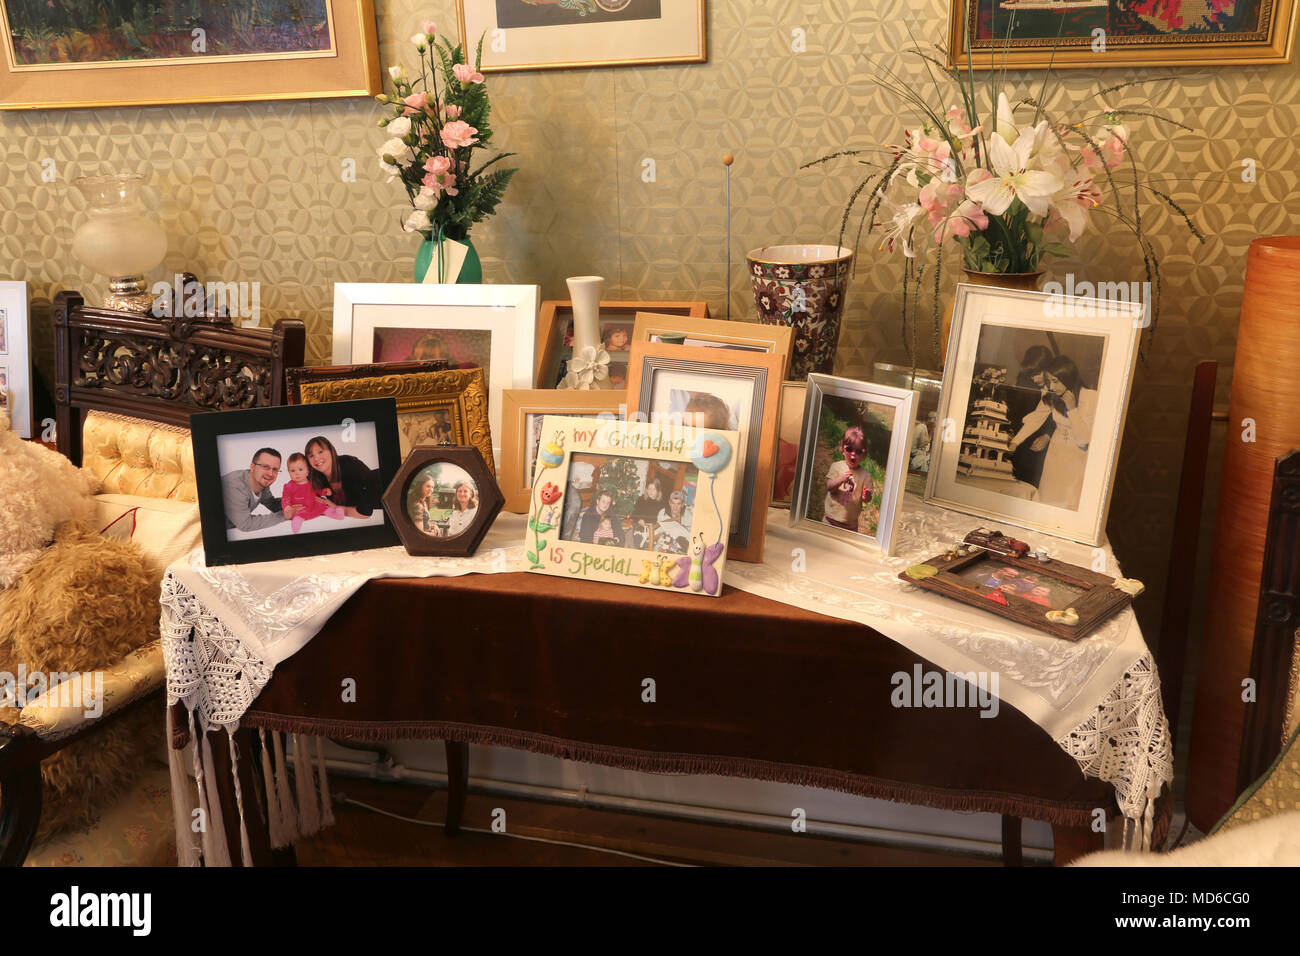 Family Photos on Side Table in Home Surrey England - Stock Image